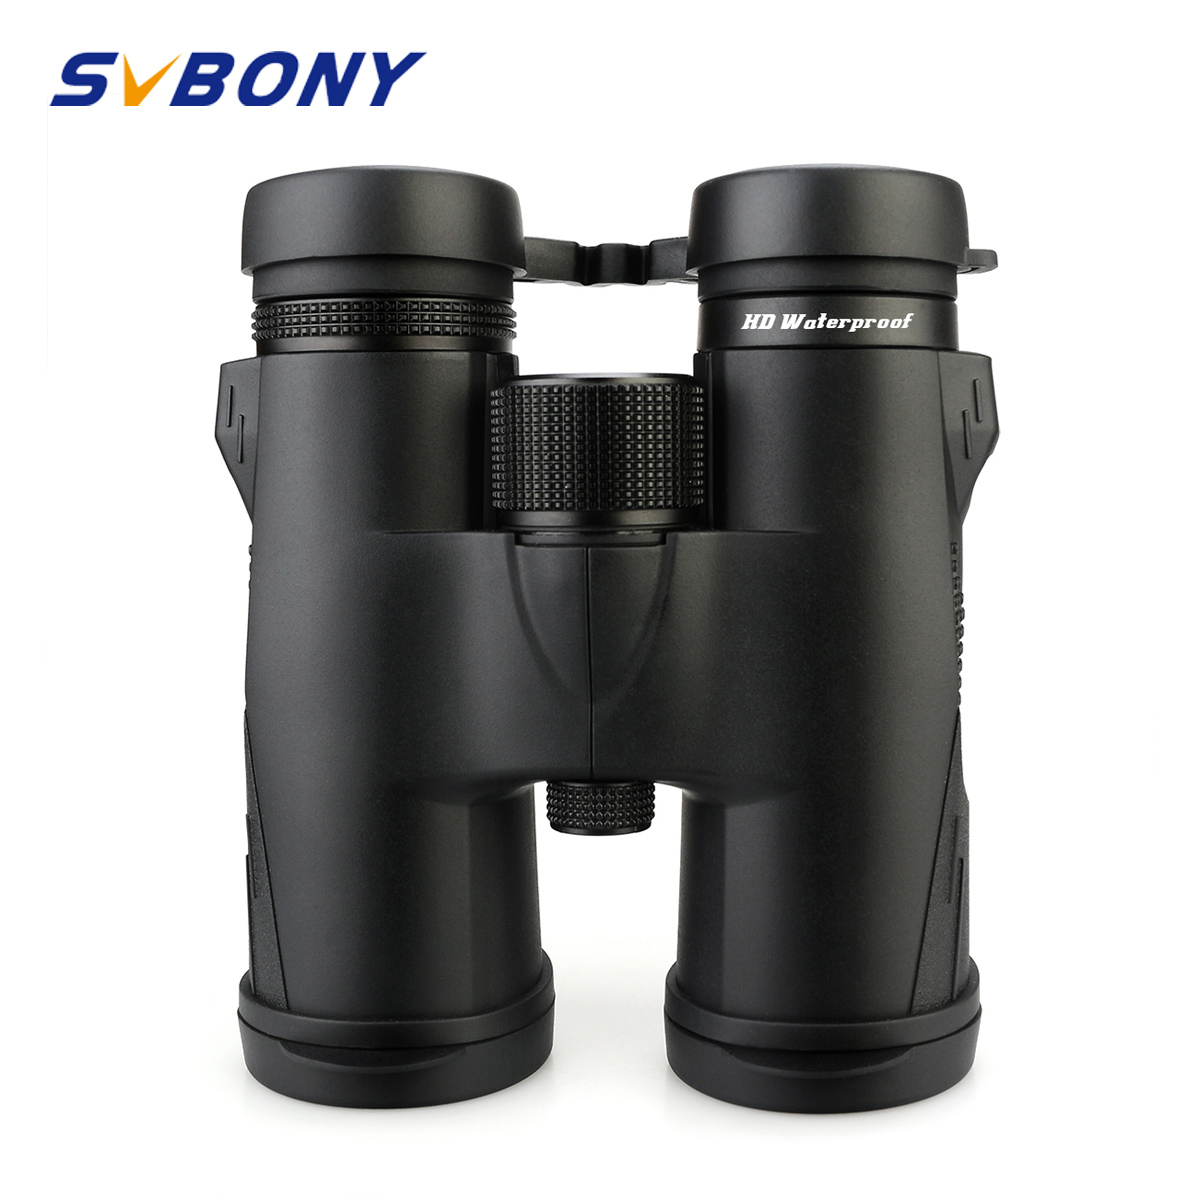 SVBONY 8x42 Binoculars BAK4 Prism SV47 HD Telescope Waterproof Optical Glass High Powerful For Hiking Camping Hunting F9340B